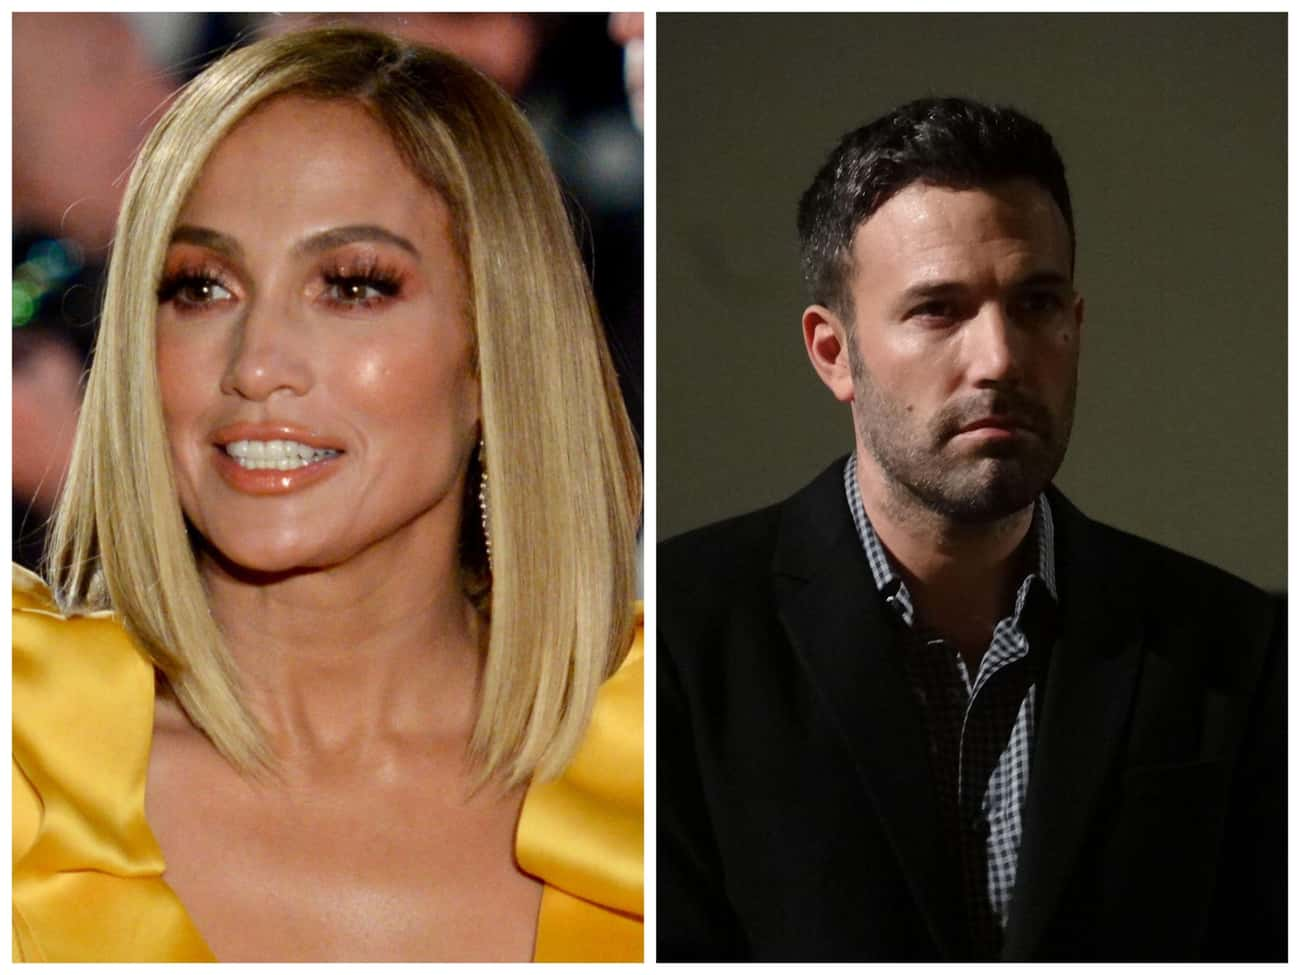 Jennifer Lopez And Ben Affleck is listed (or ranked) 2 on the list Celebrities Who Broke Up But Still Remained Close With Their Exes